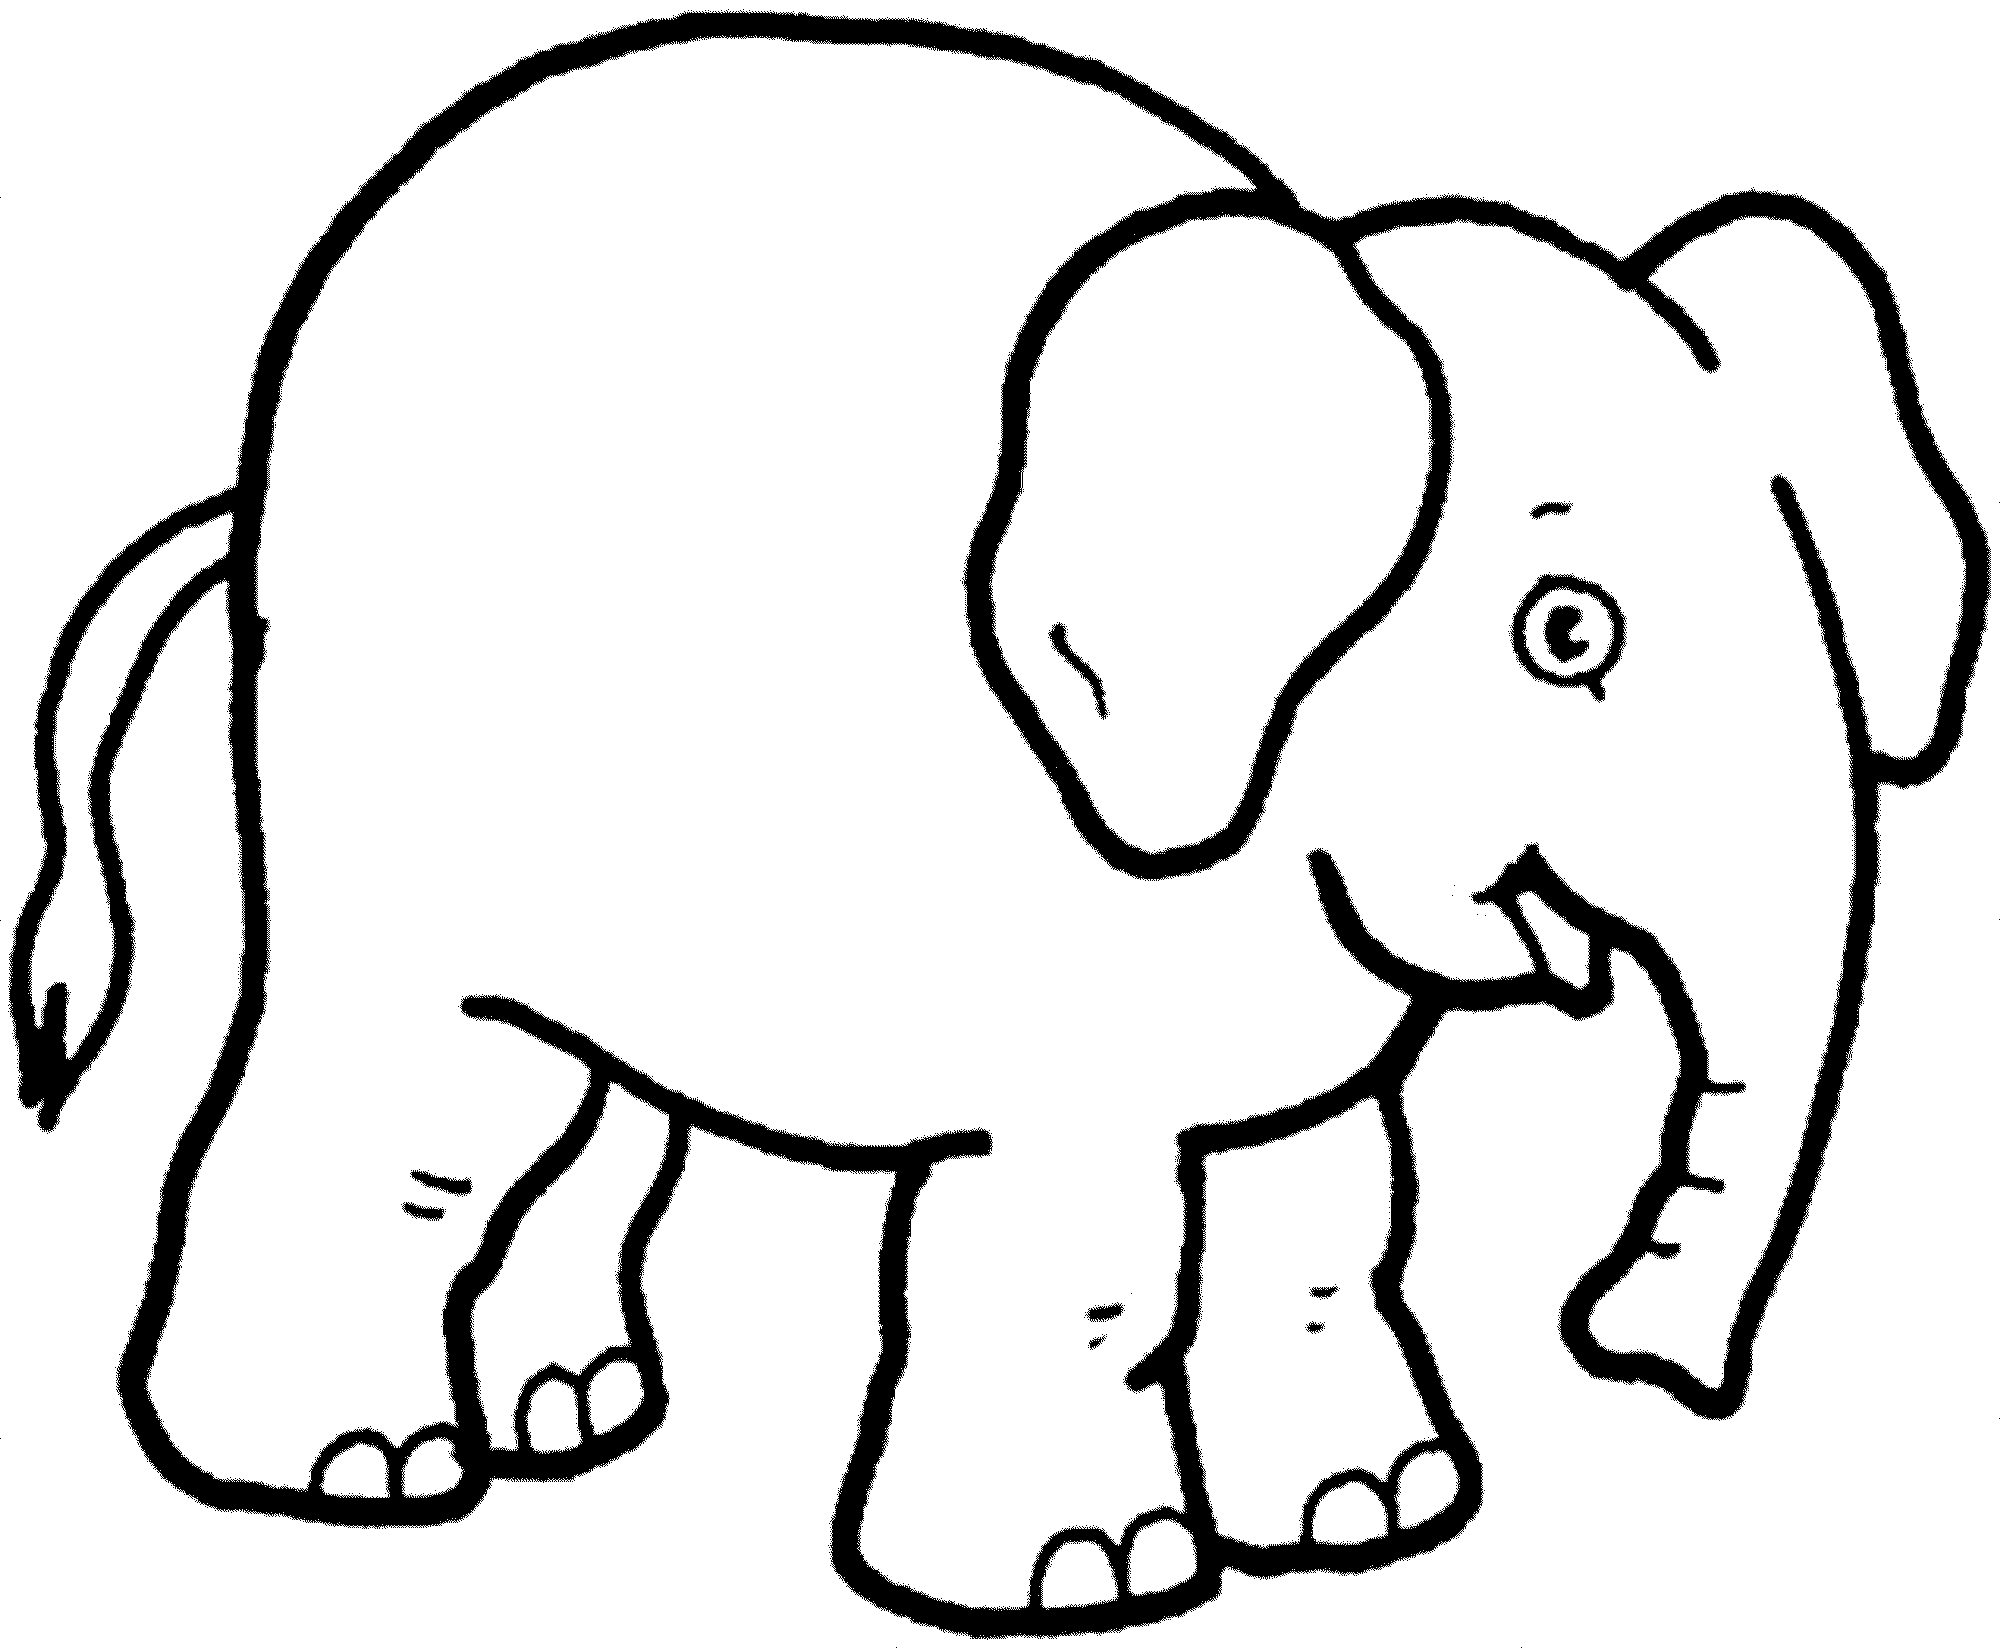 colouring picture of an elephant cute baby elephant coloring pages part 3 an elephant of picture colouring